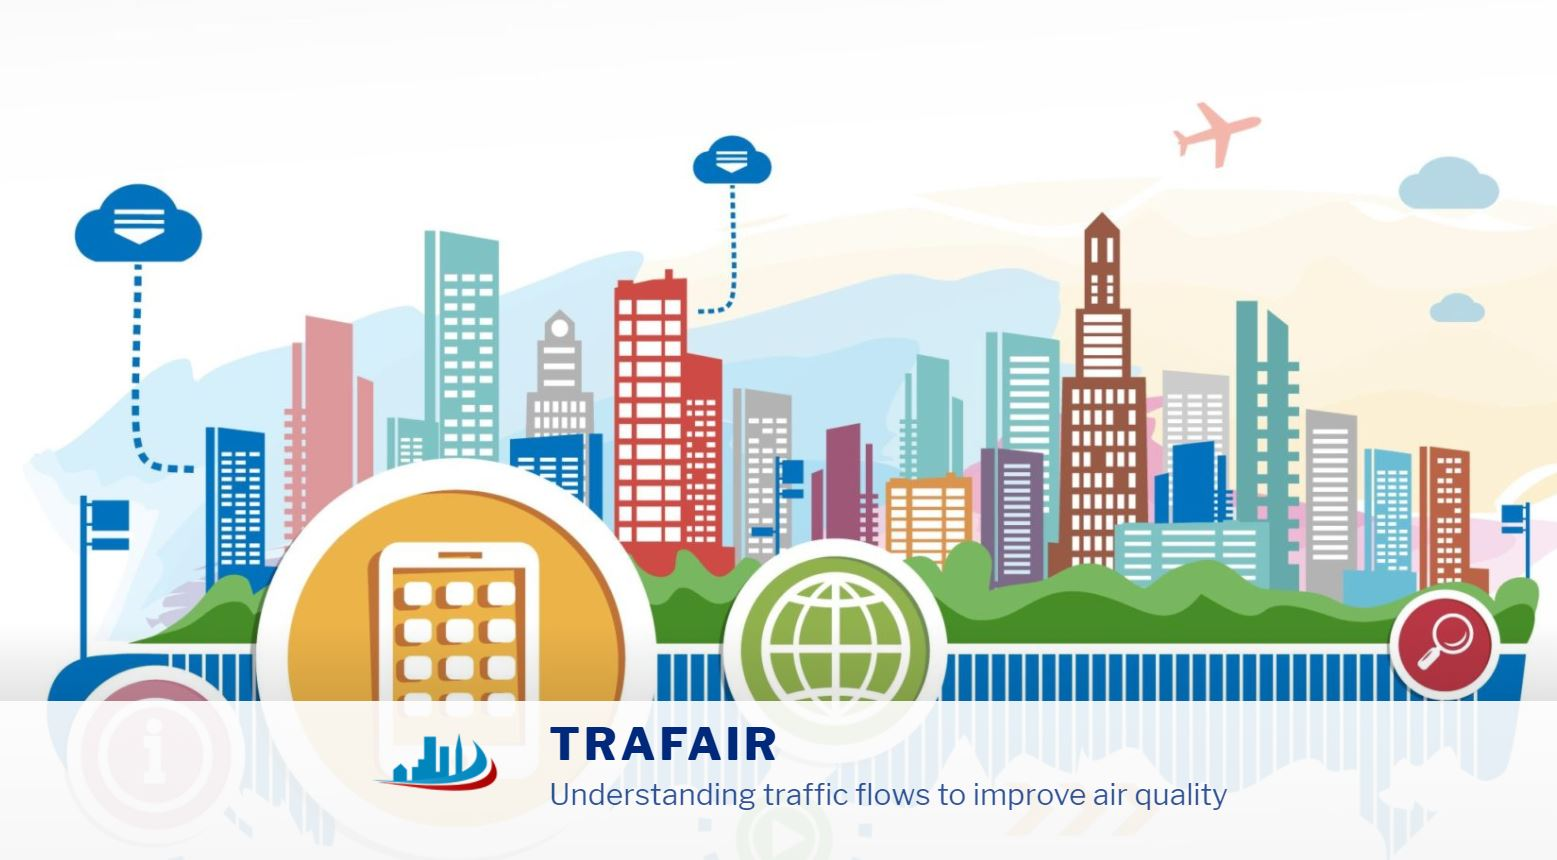 TRAFAIR (Understanding Traffic Flows to Improve Air Quality)